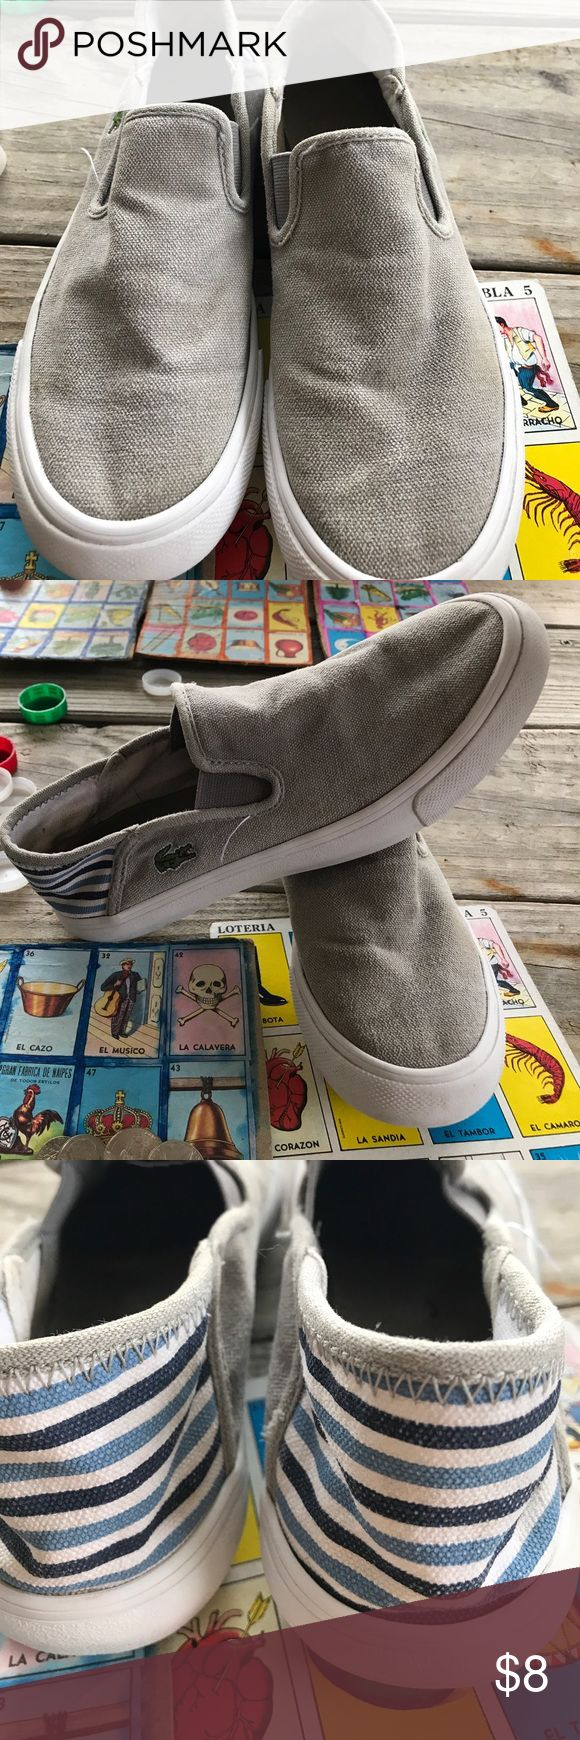 🌟Sale🌟 Lacoste Boys Shoes In used condition Lacoste Shoes Sneakers